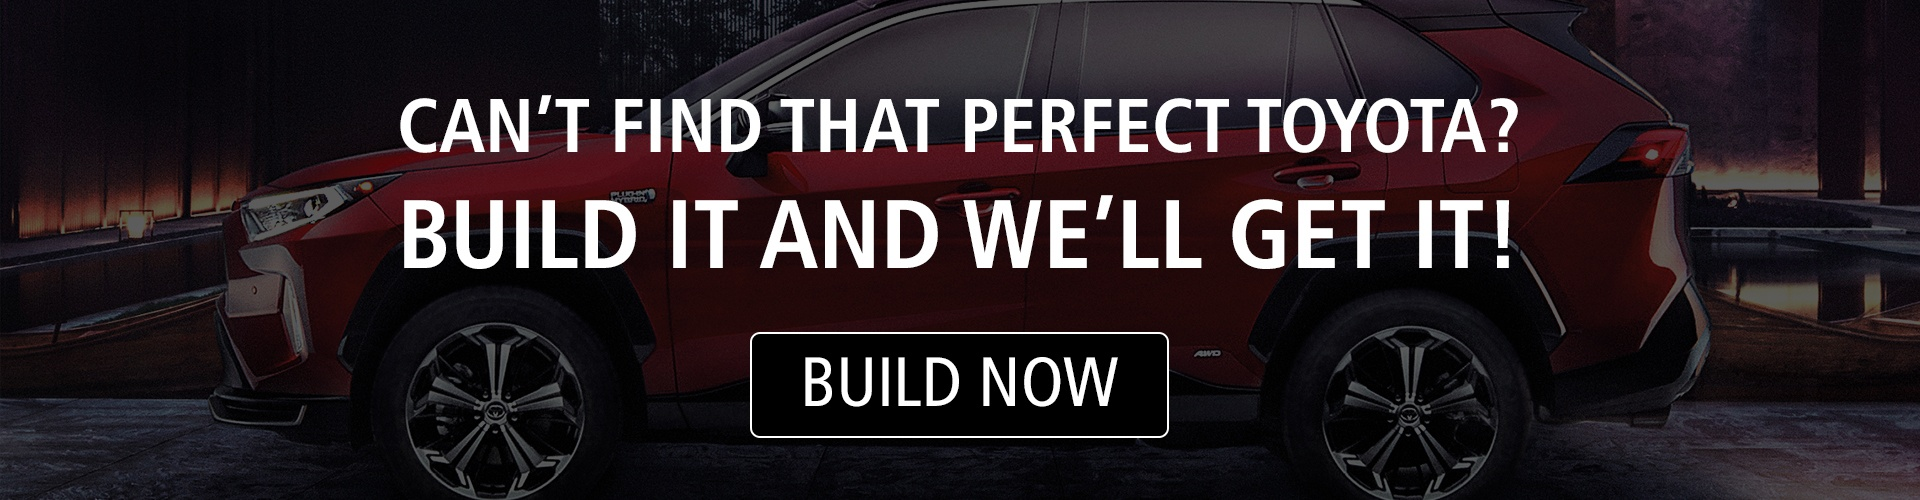 Can't find the perfect Toyota? Build it and we'll get it!